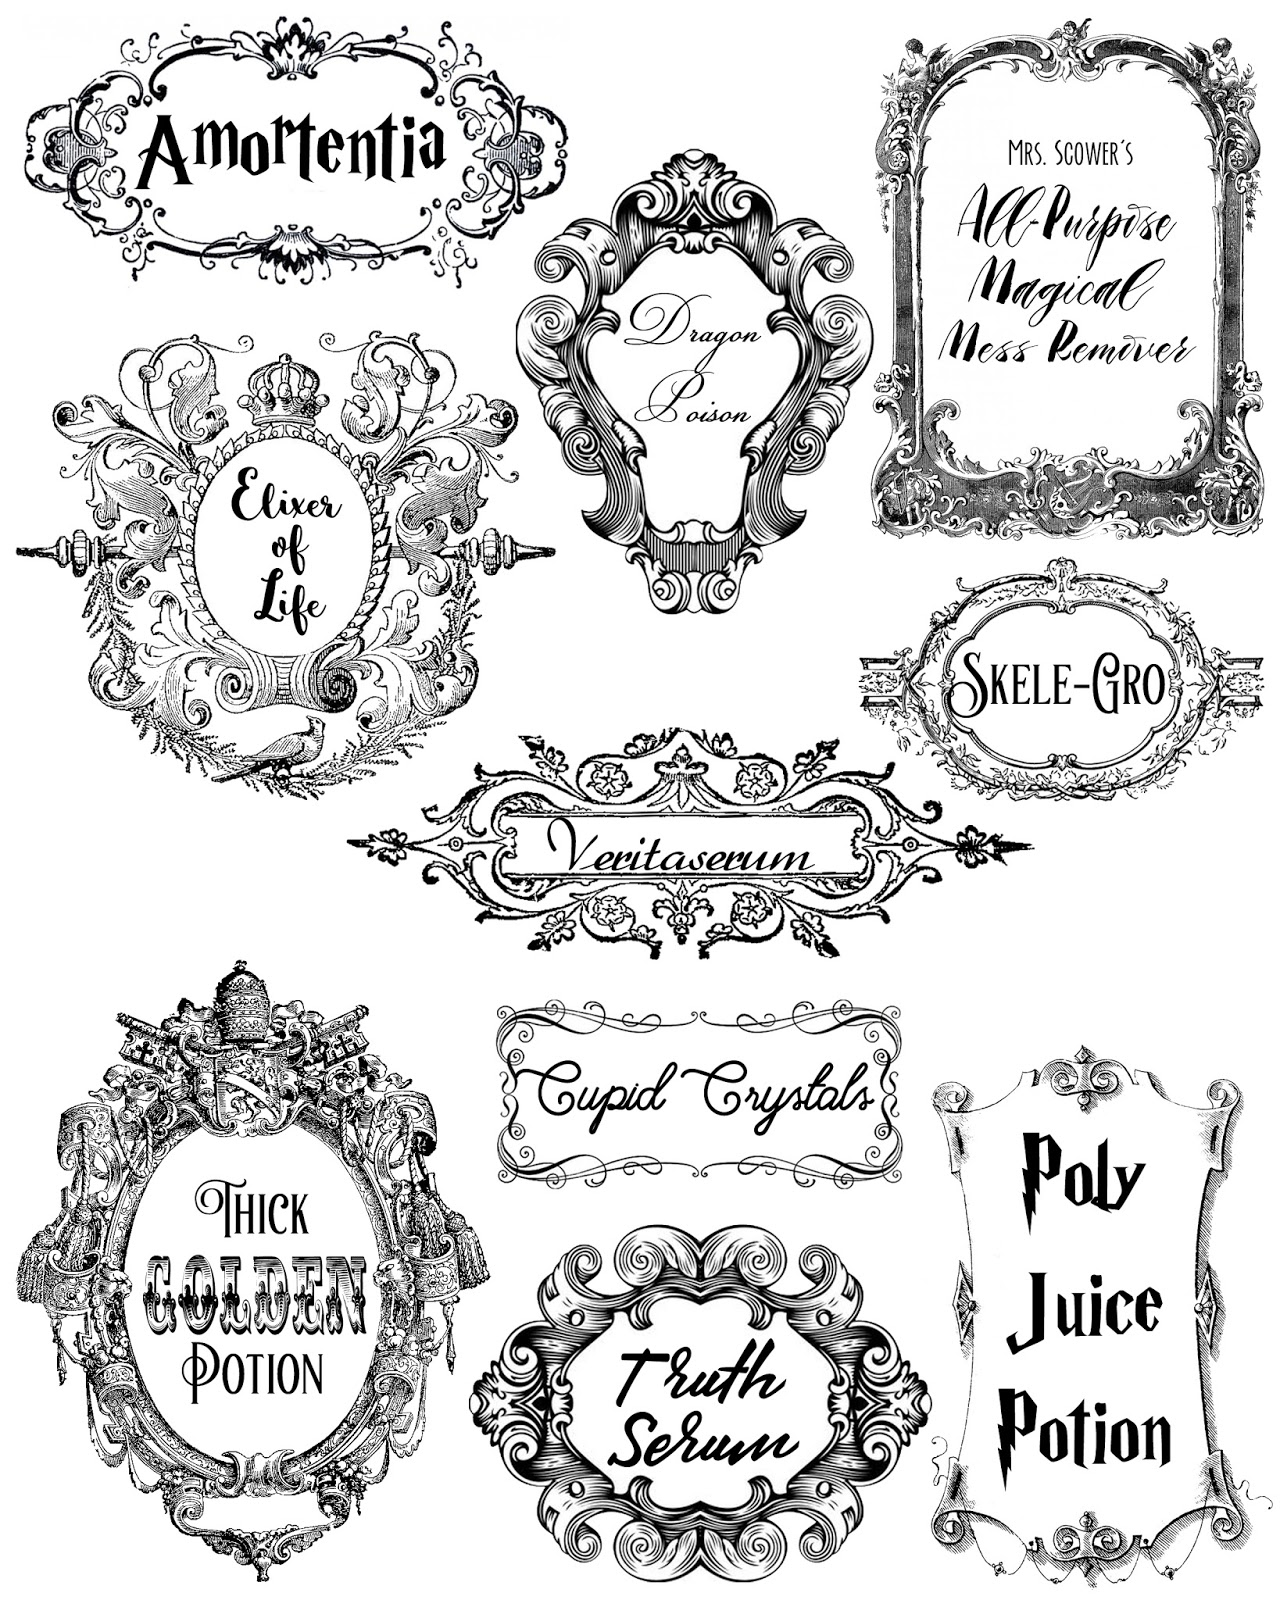 photo relating to Harry Potter Potion Labels Printable referred to as Potions and Contaminants!